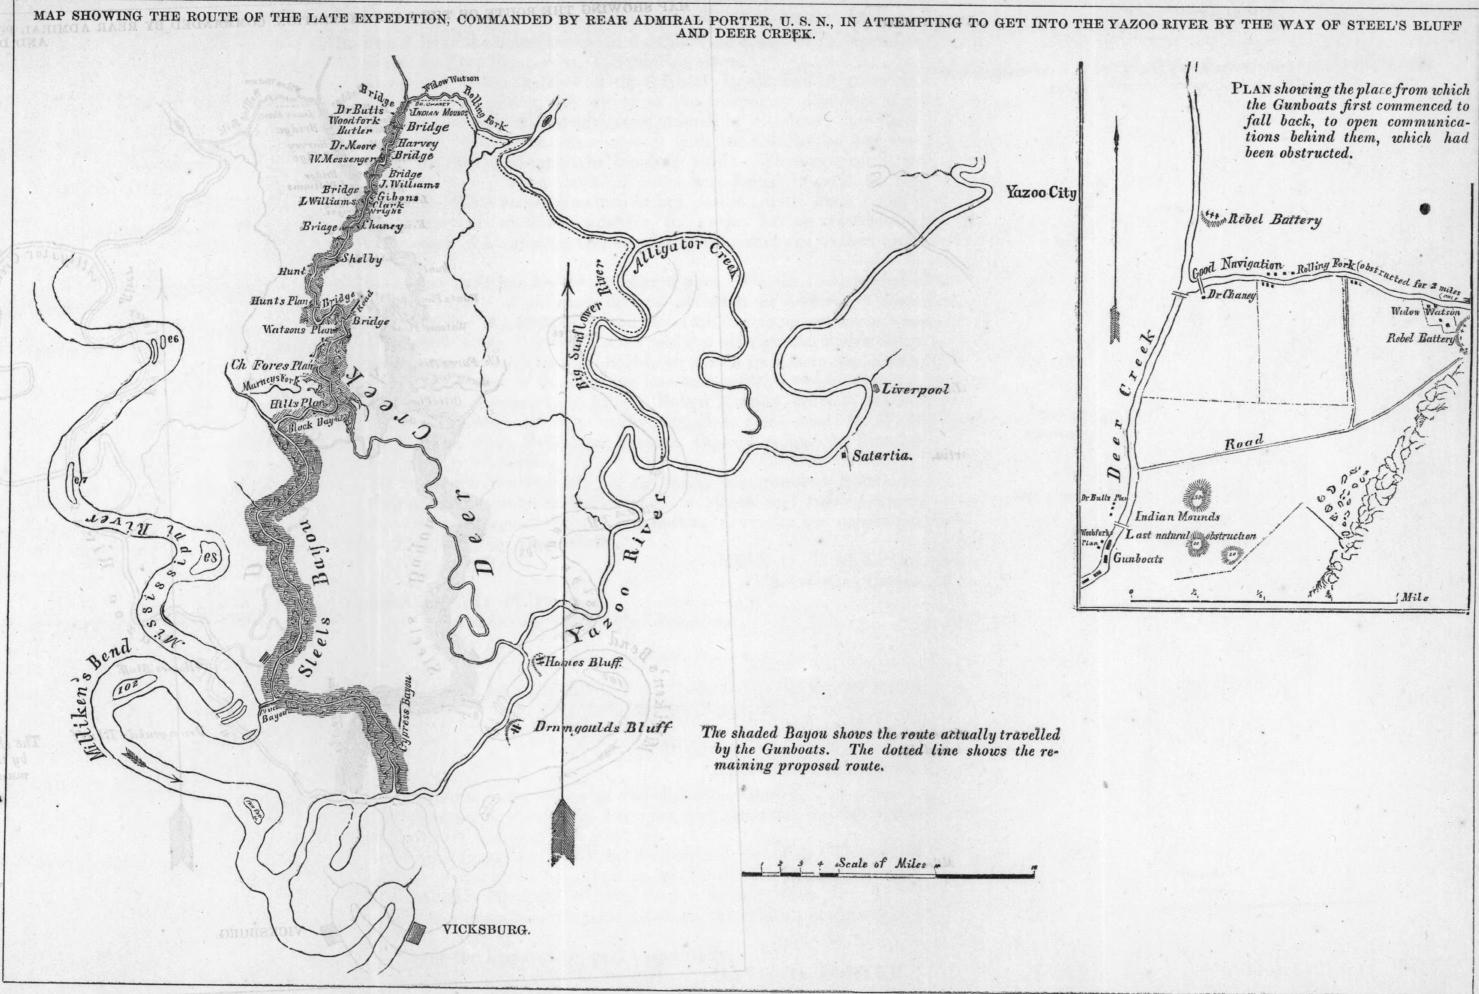 Porter's Yazoo River expedition against the last Confederate Naval base in western waters at Yazoo City. This image is from the Library of Congress.